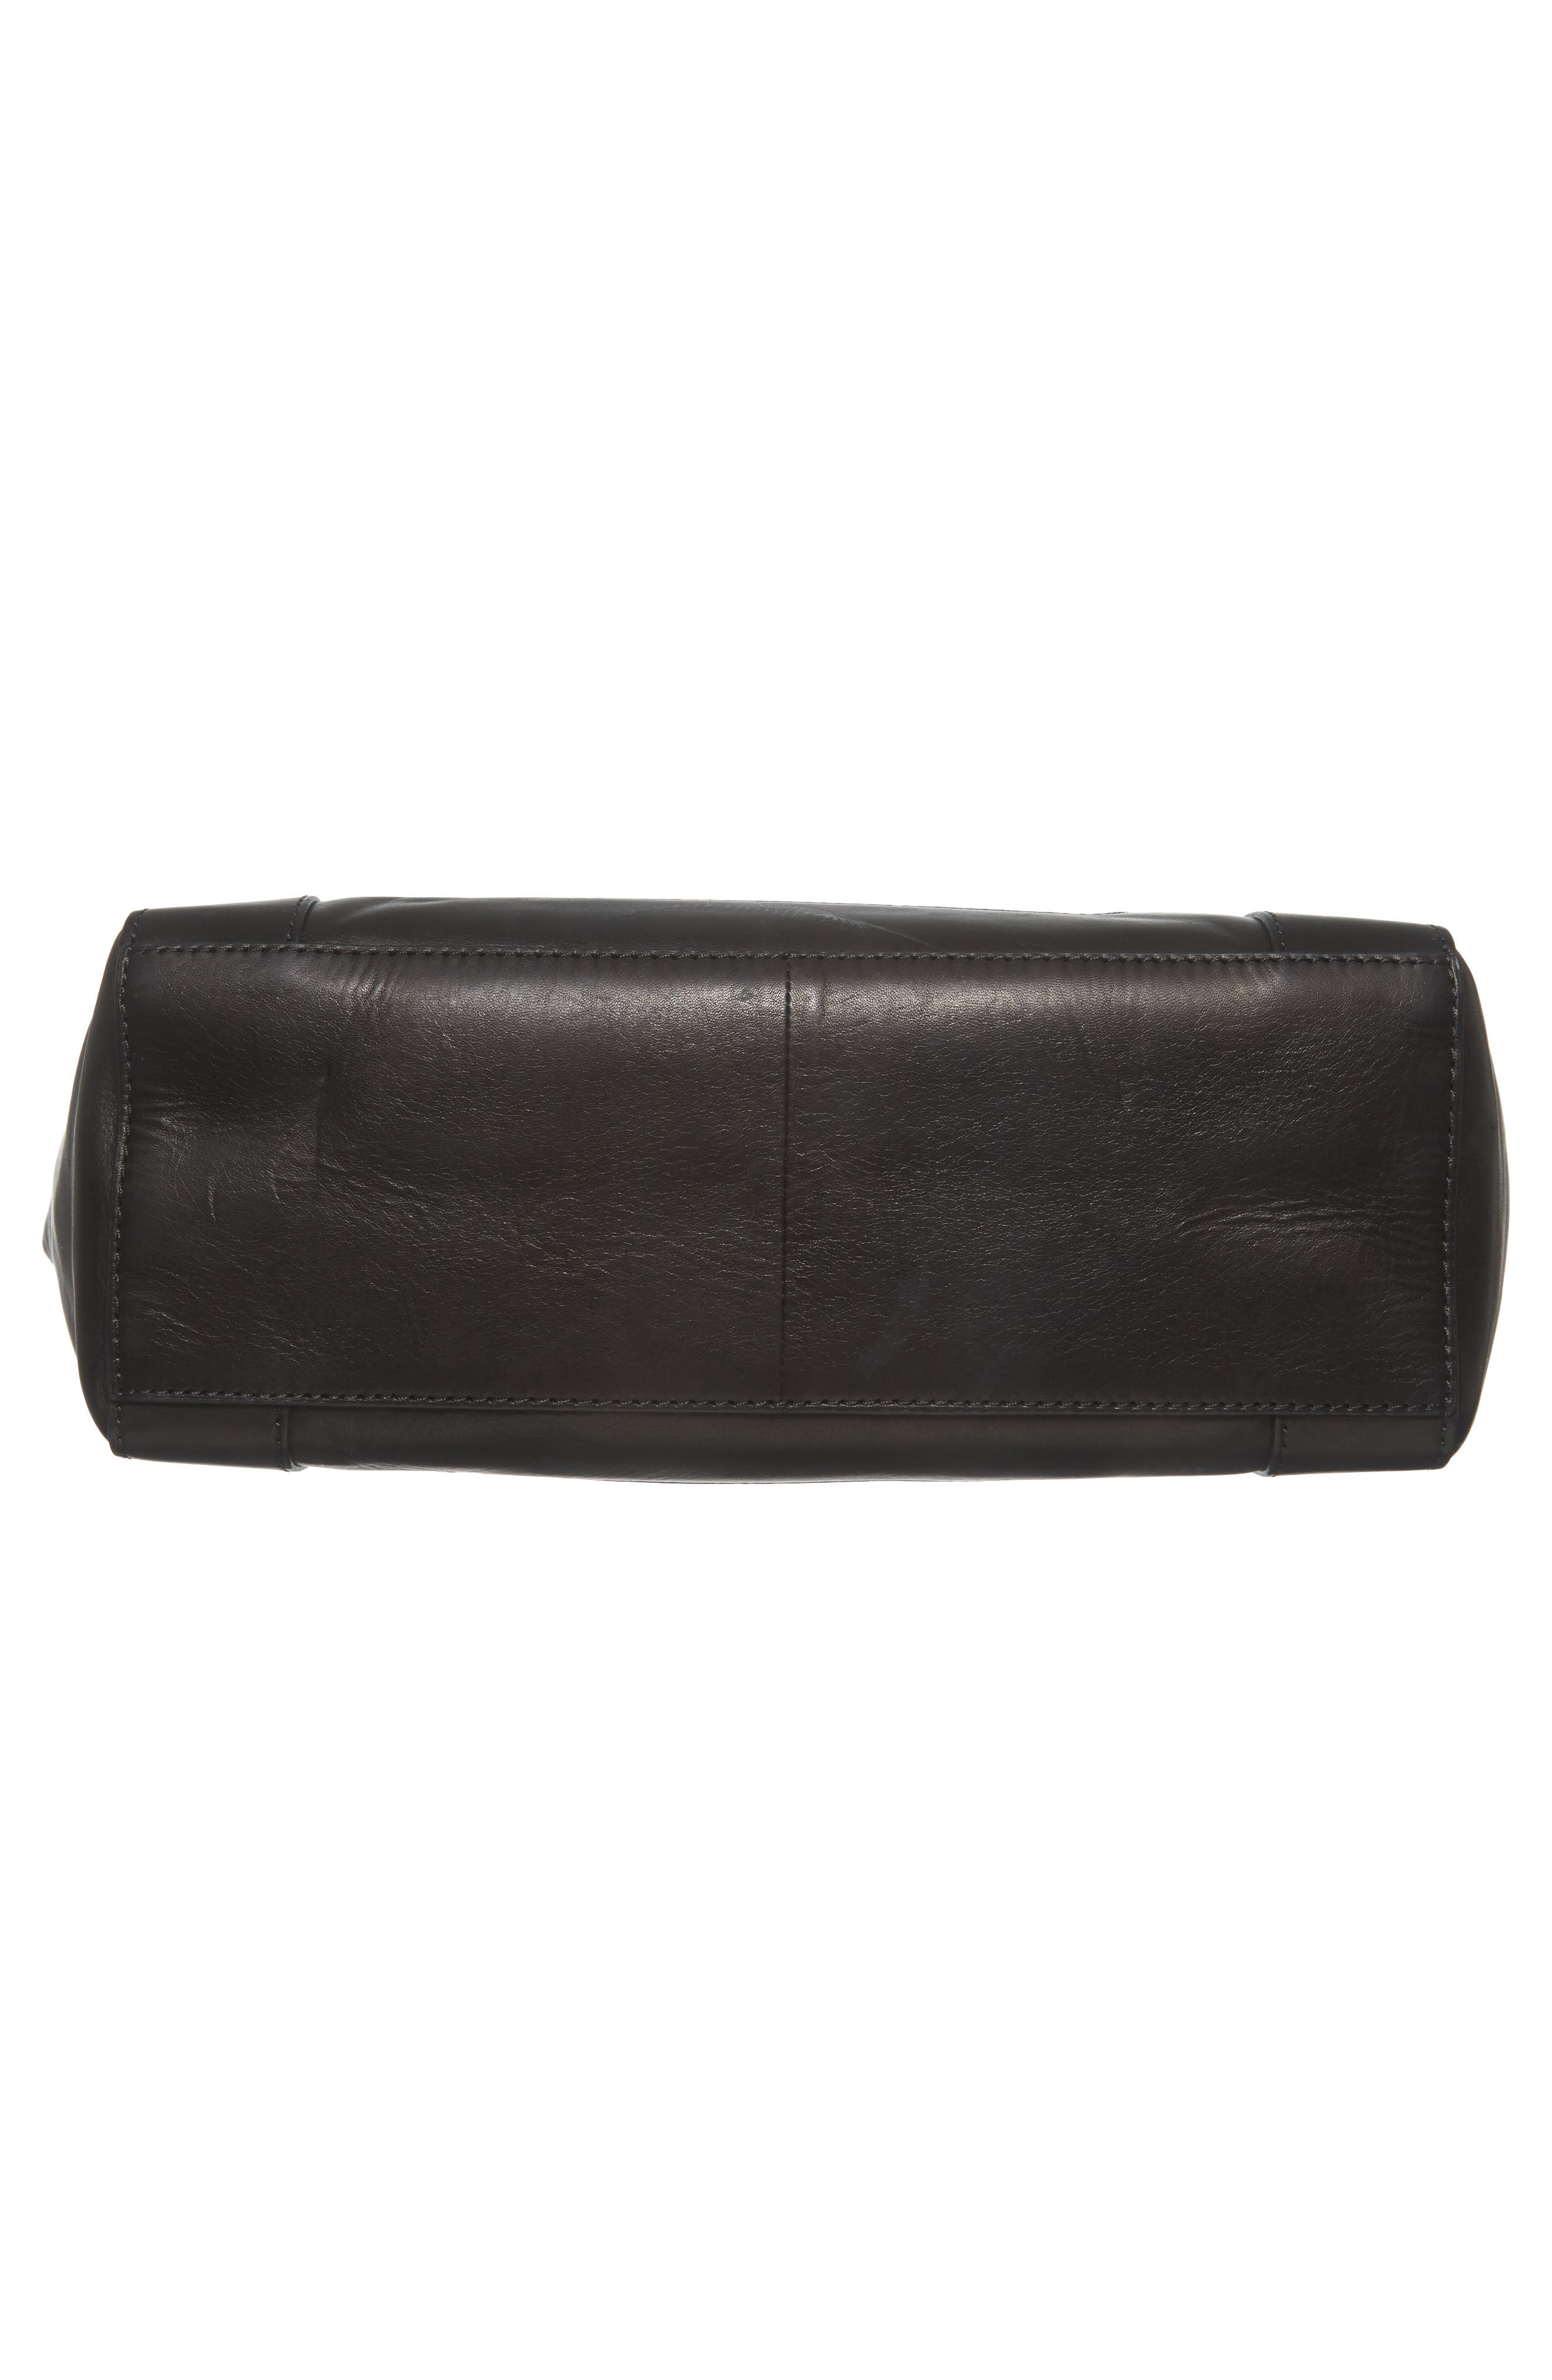 Melissa Leather Shoulder Bag,                             Alternate thumbnail 5, color,                             Black